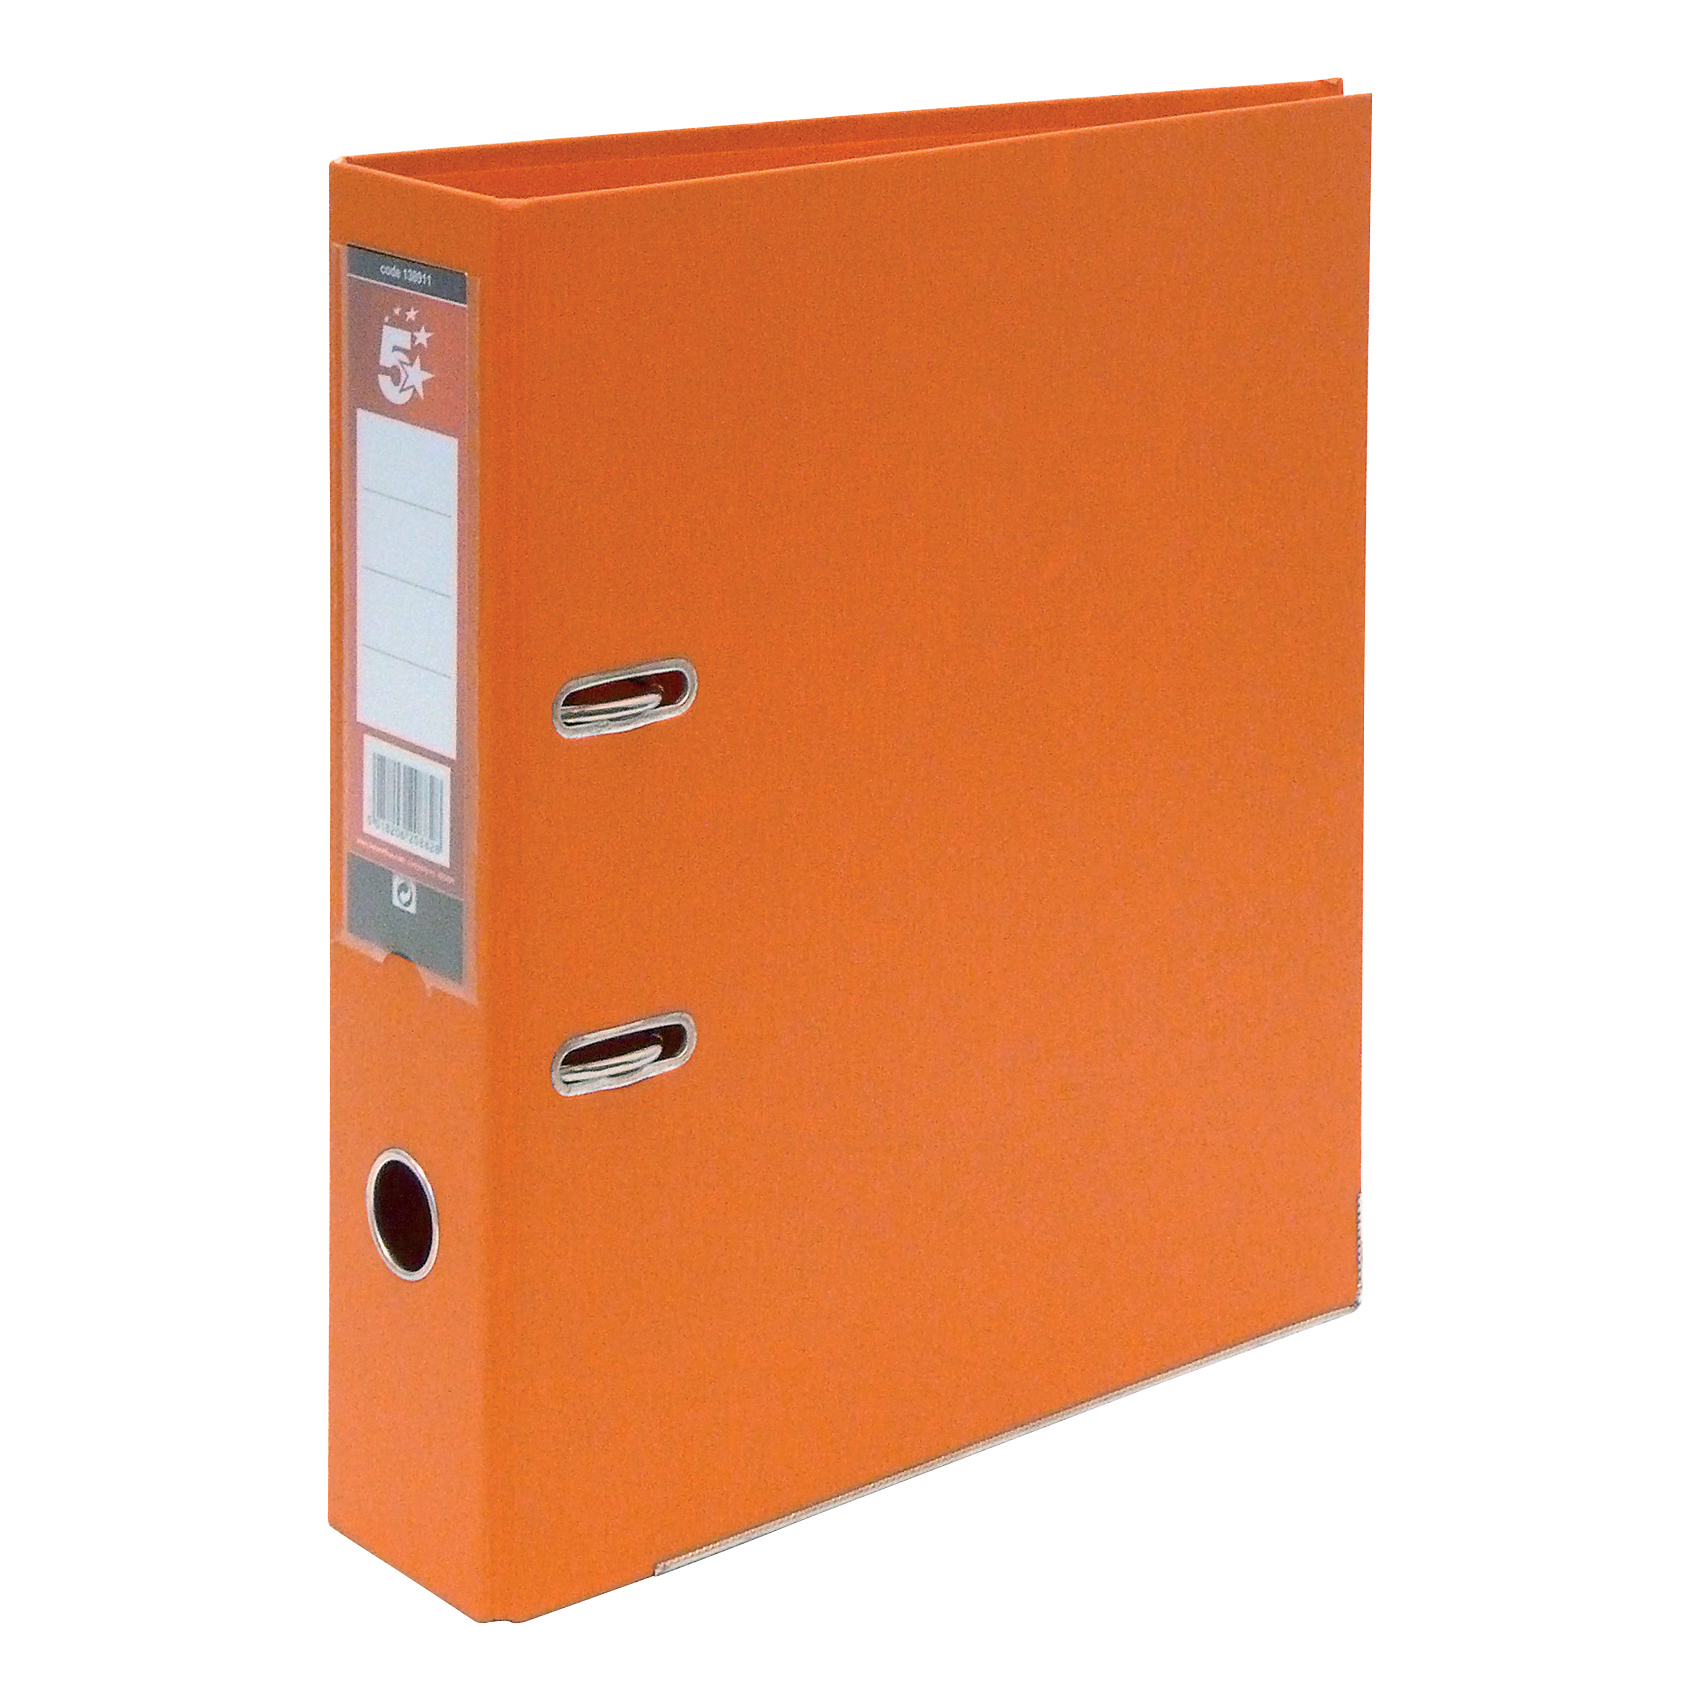 5 Star Office Lever Arch File Polypropylene Capacity 70mm A4 Orange Pack 10